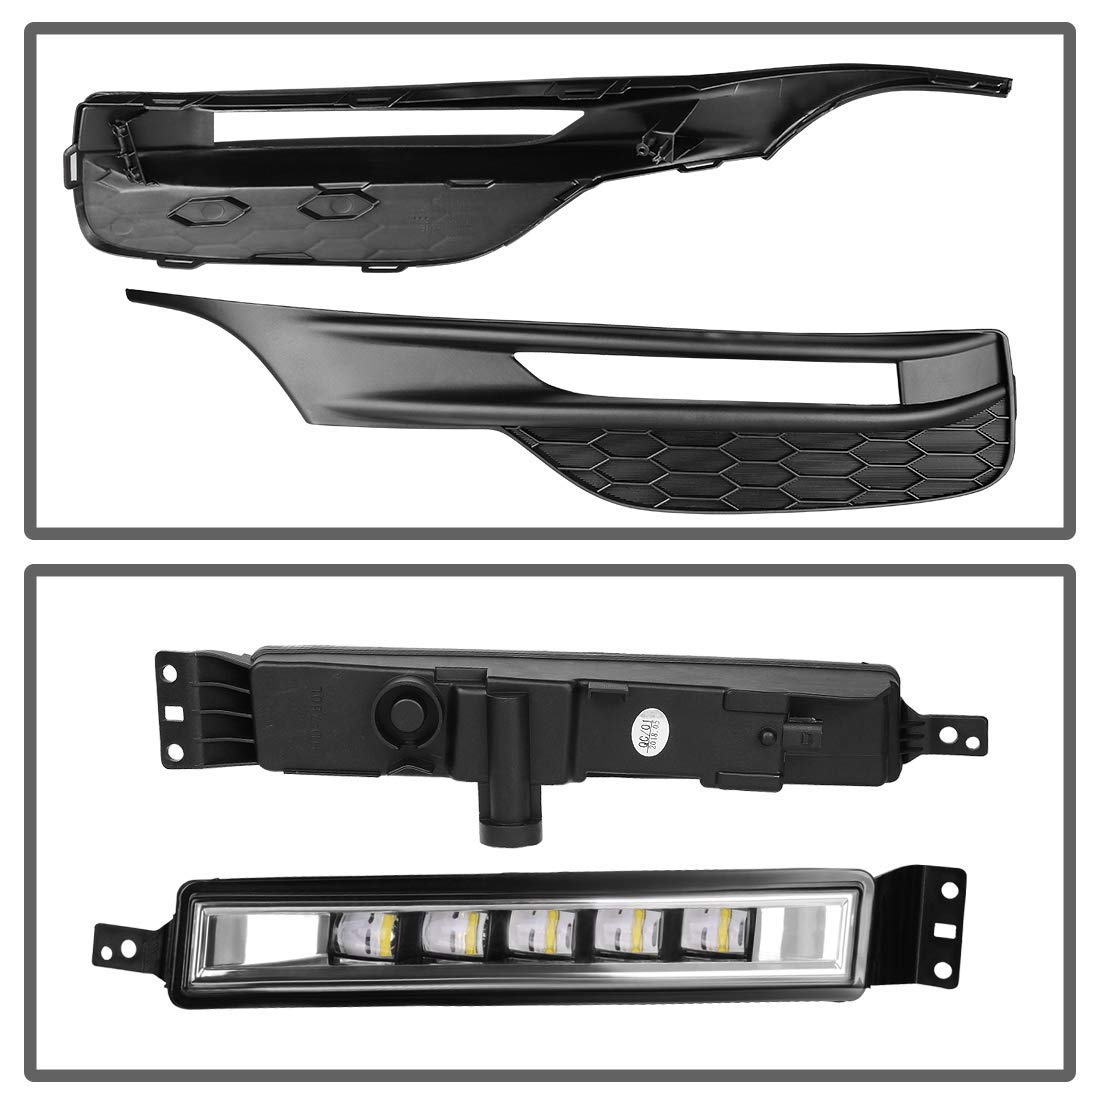 4-Door Sedan,Clear Lens with Wiring Kit and Lamp Bracket AUTOSAVER88 Fog Lights LED SMD Lamp for 2016 2017 Honda Accord